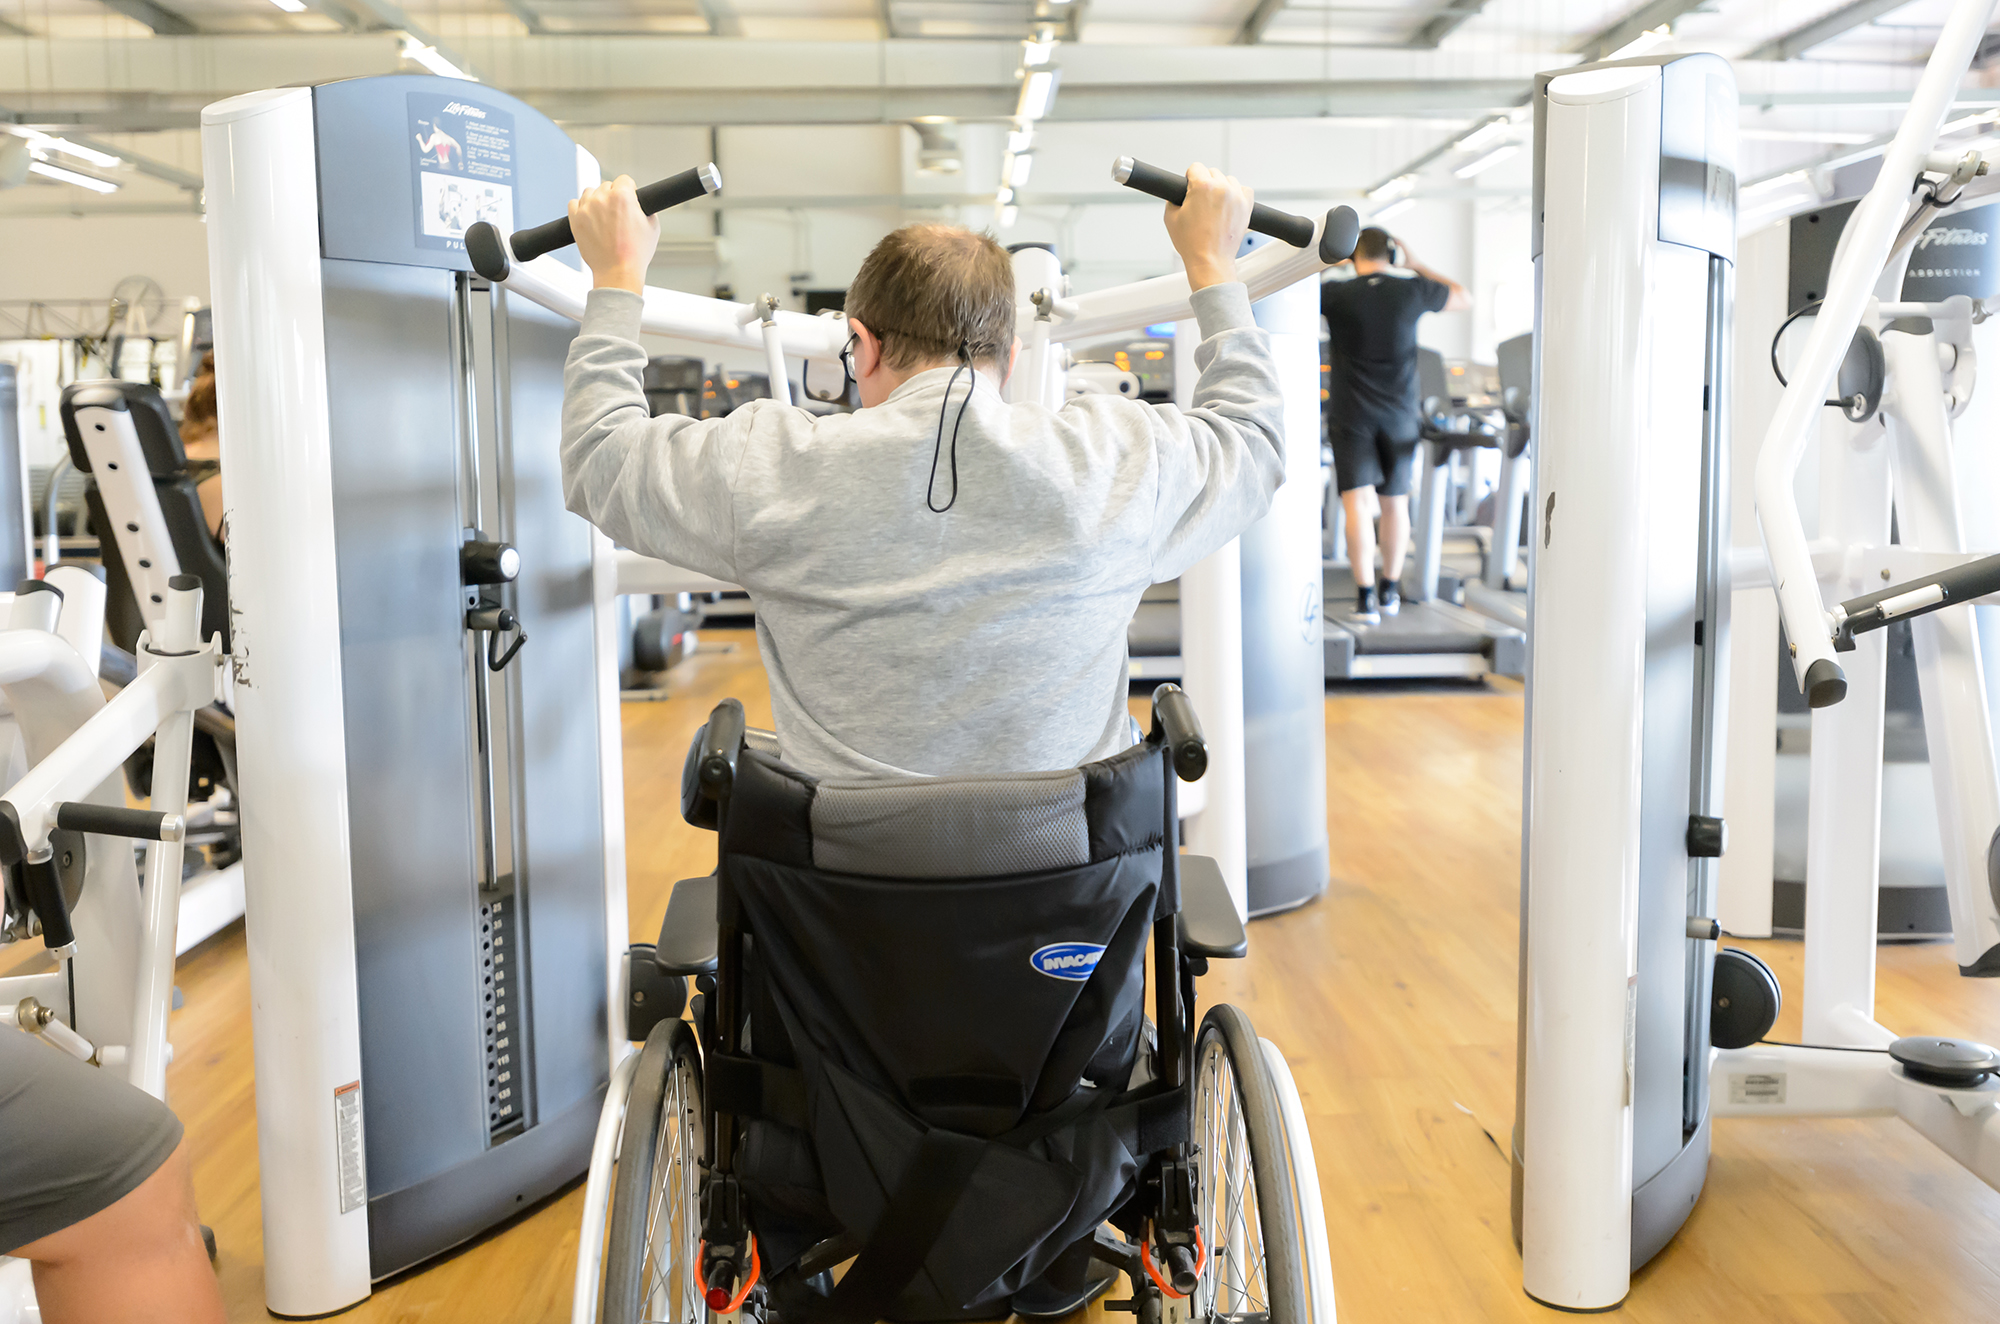 A man in a wheelchair performs a lat pulldown on a weights machine in a gym